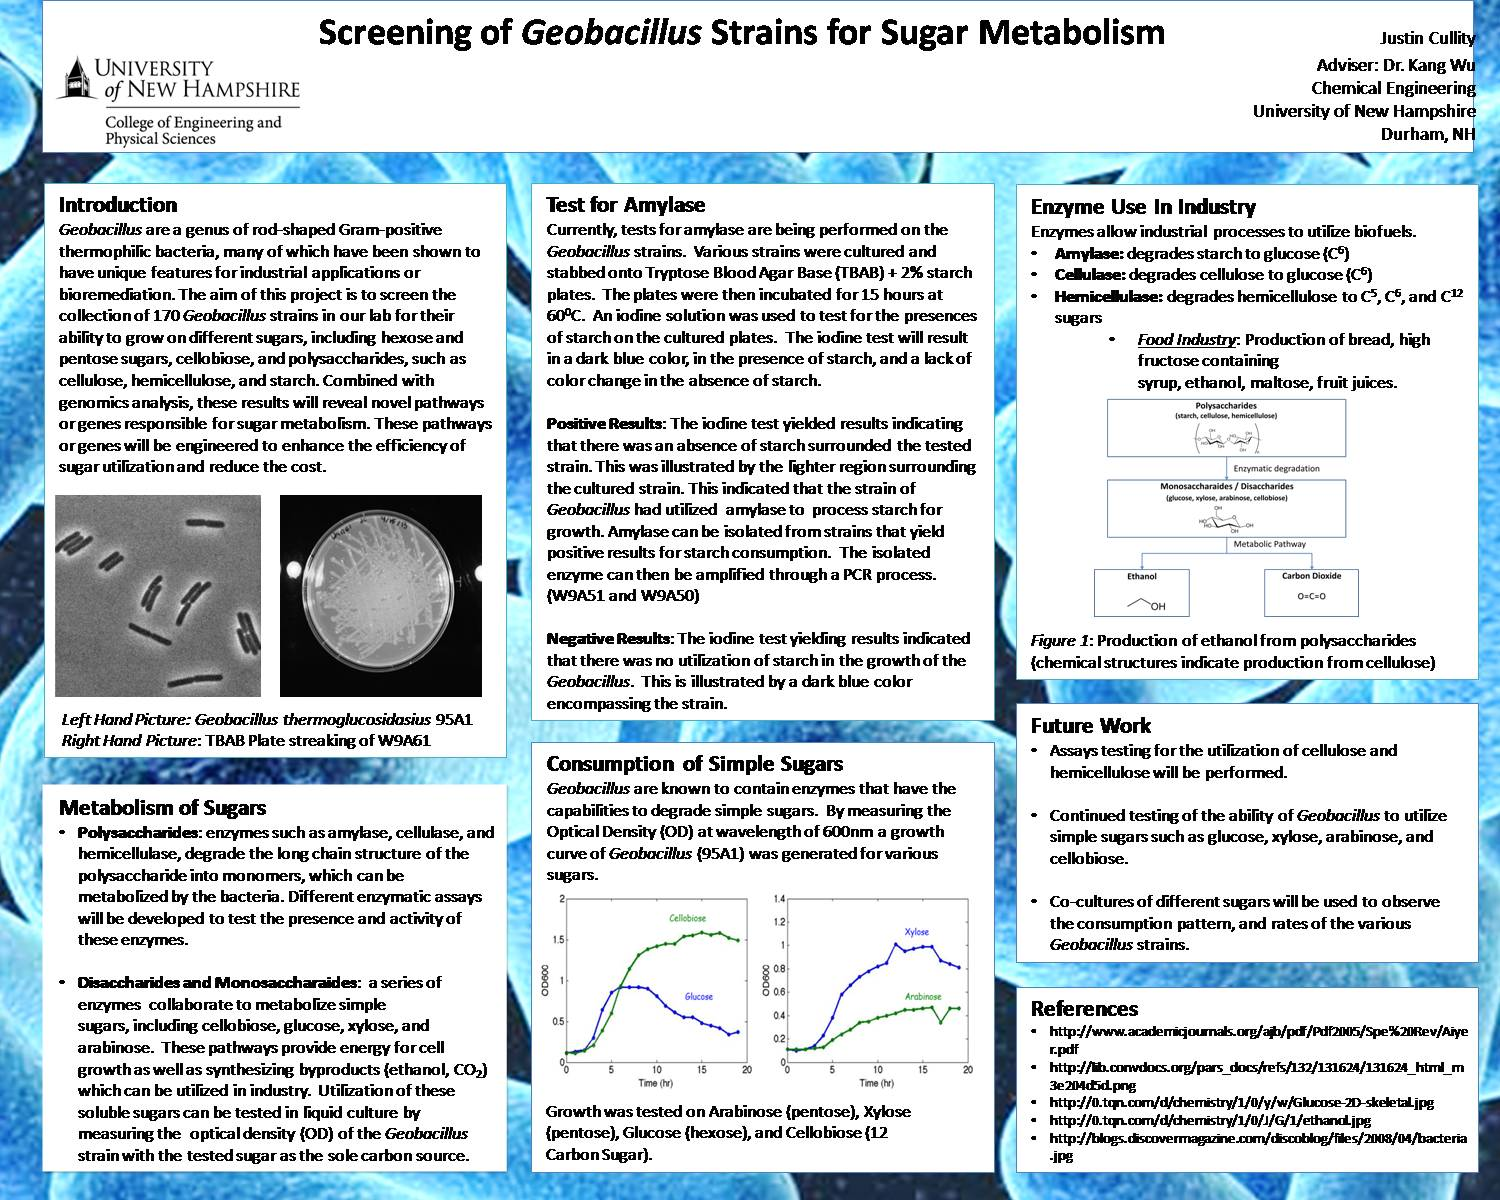 Screening Of Geobacillus Strains For Sugar Metabolism by jrq97